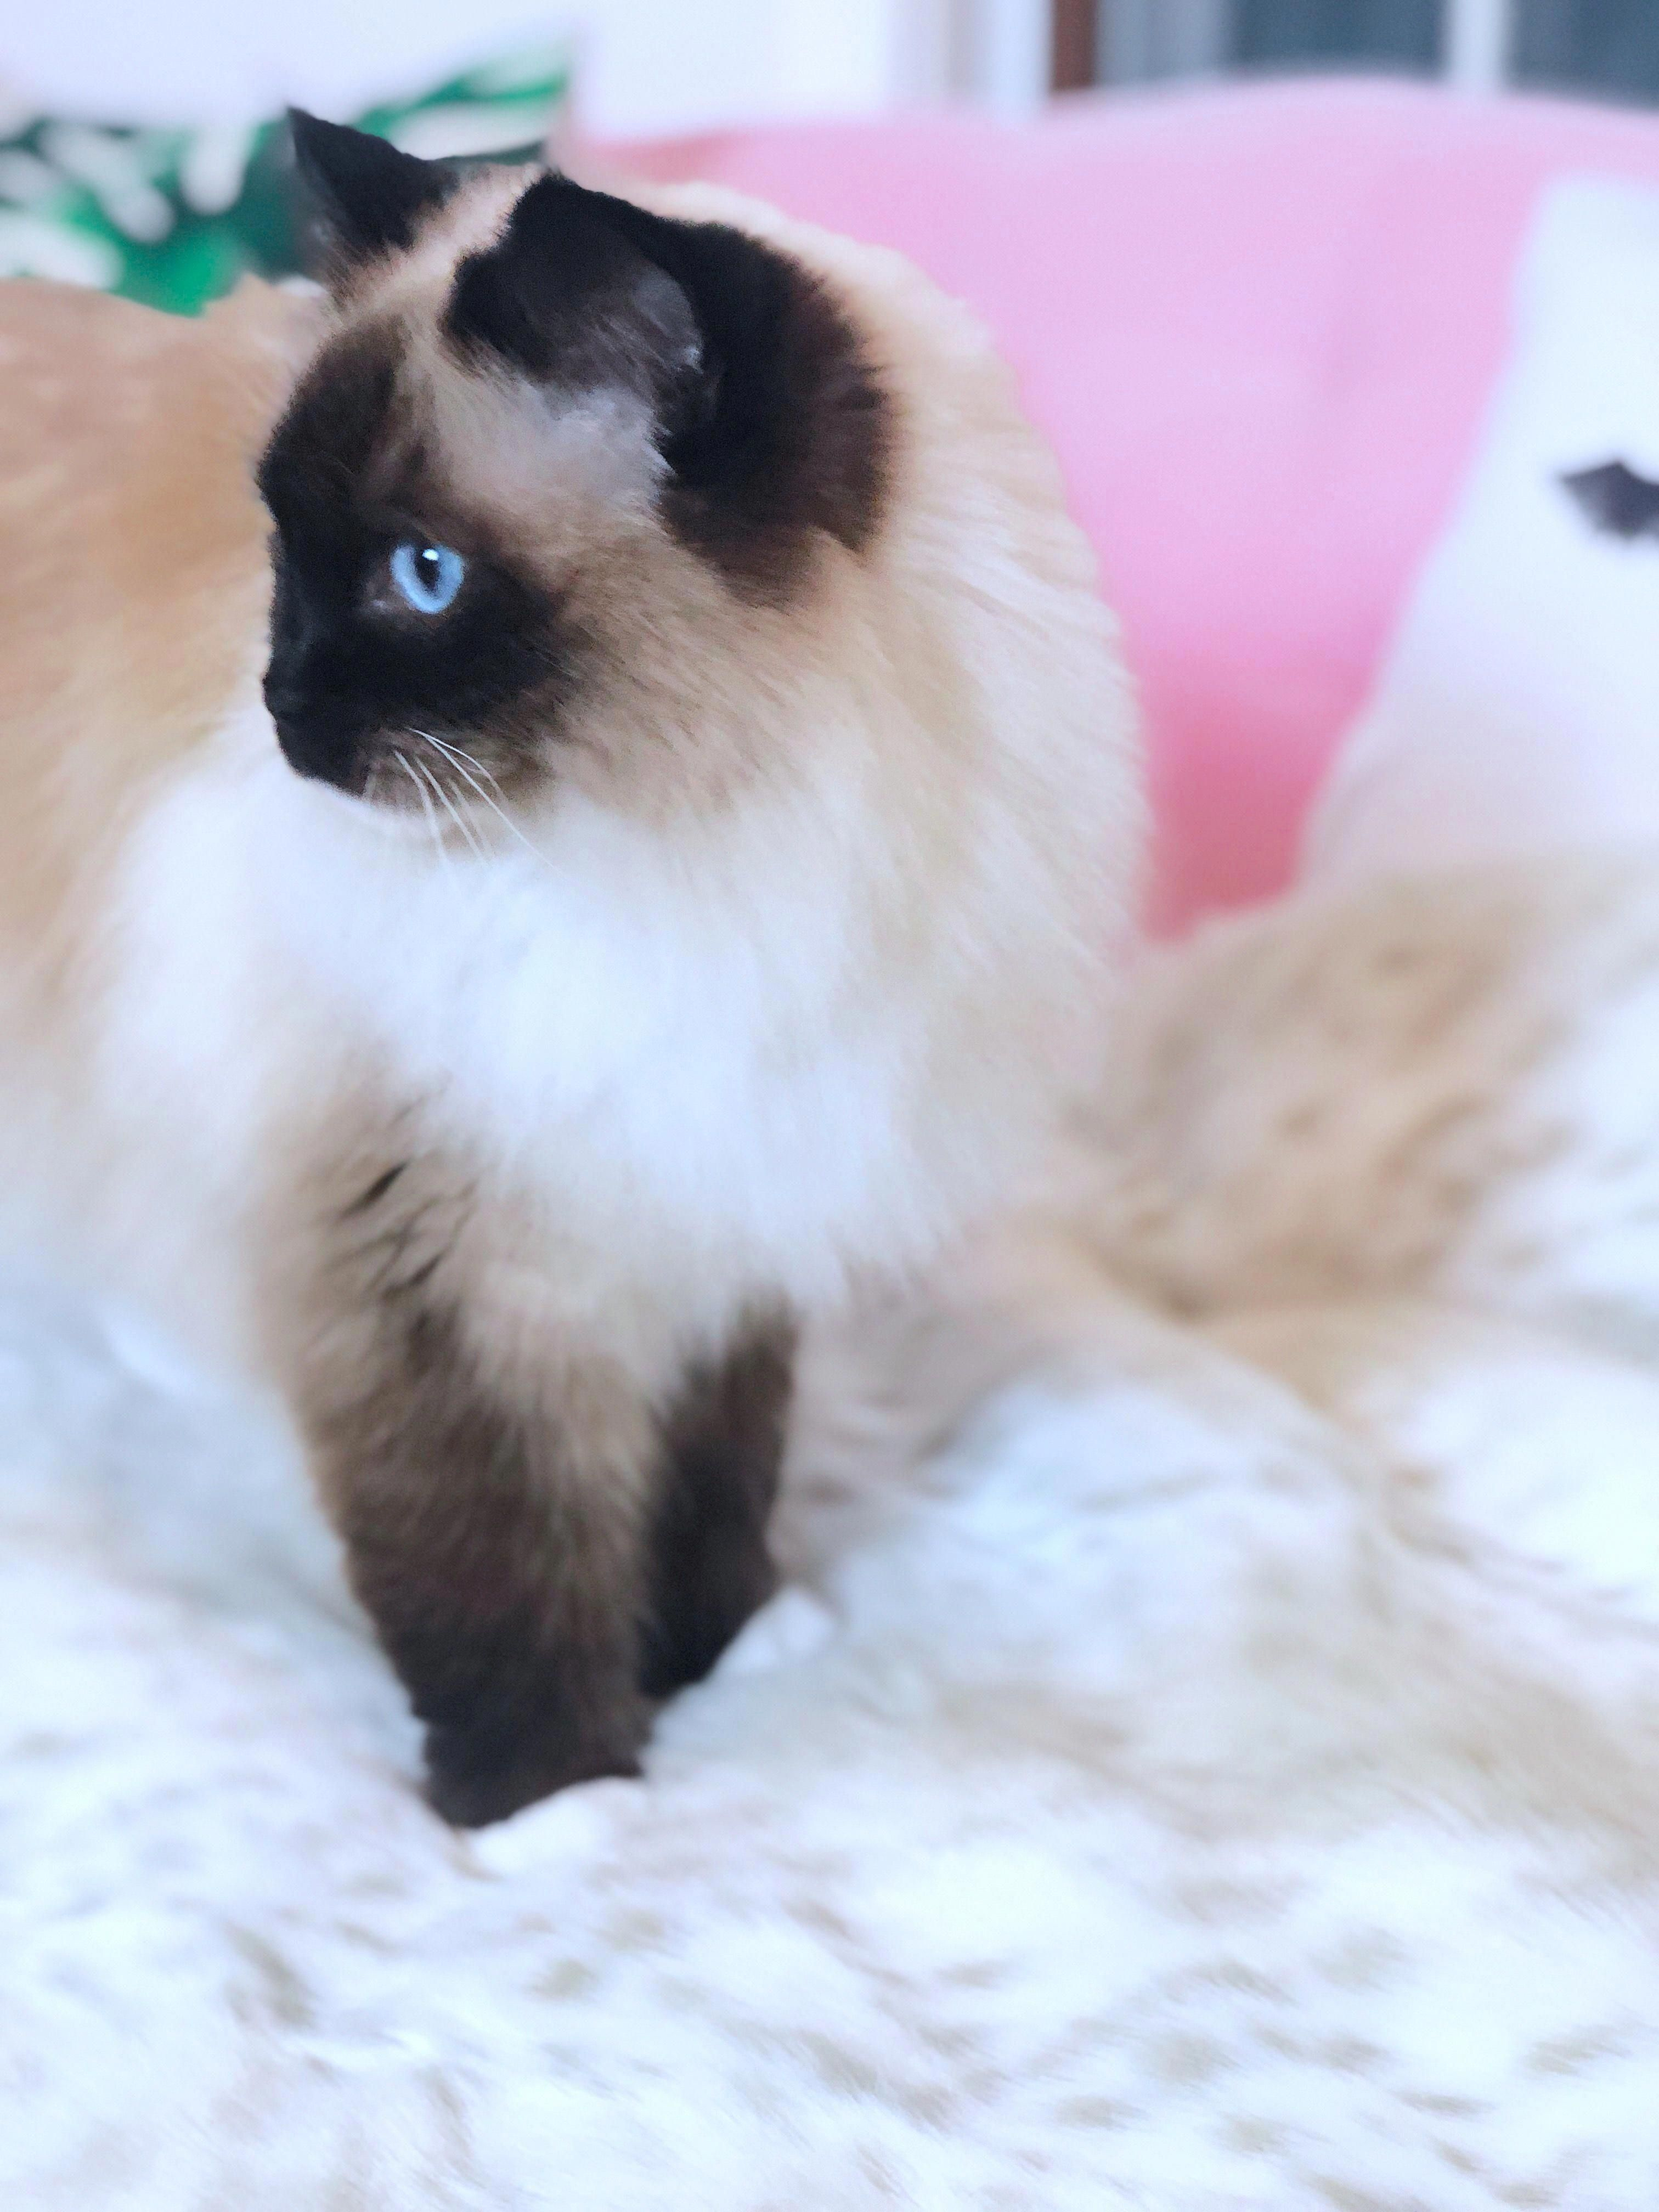 Cute cats and kittens Ragdoll cat with blue eyes Cat photos and images Cute animal photos This kitty is adorablecatragdollcutecatscuteanimals...